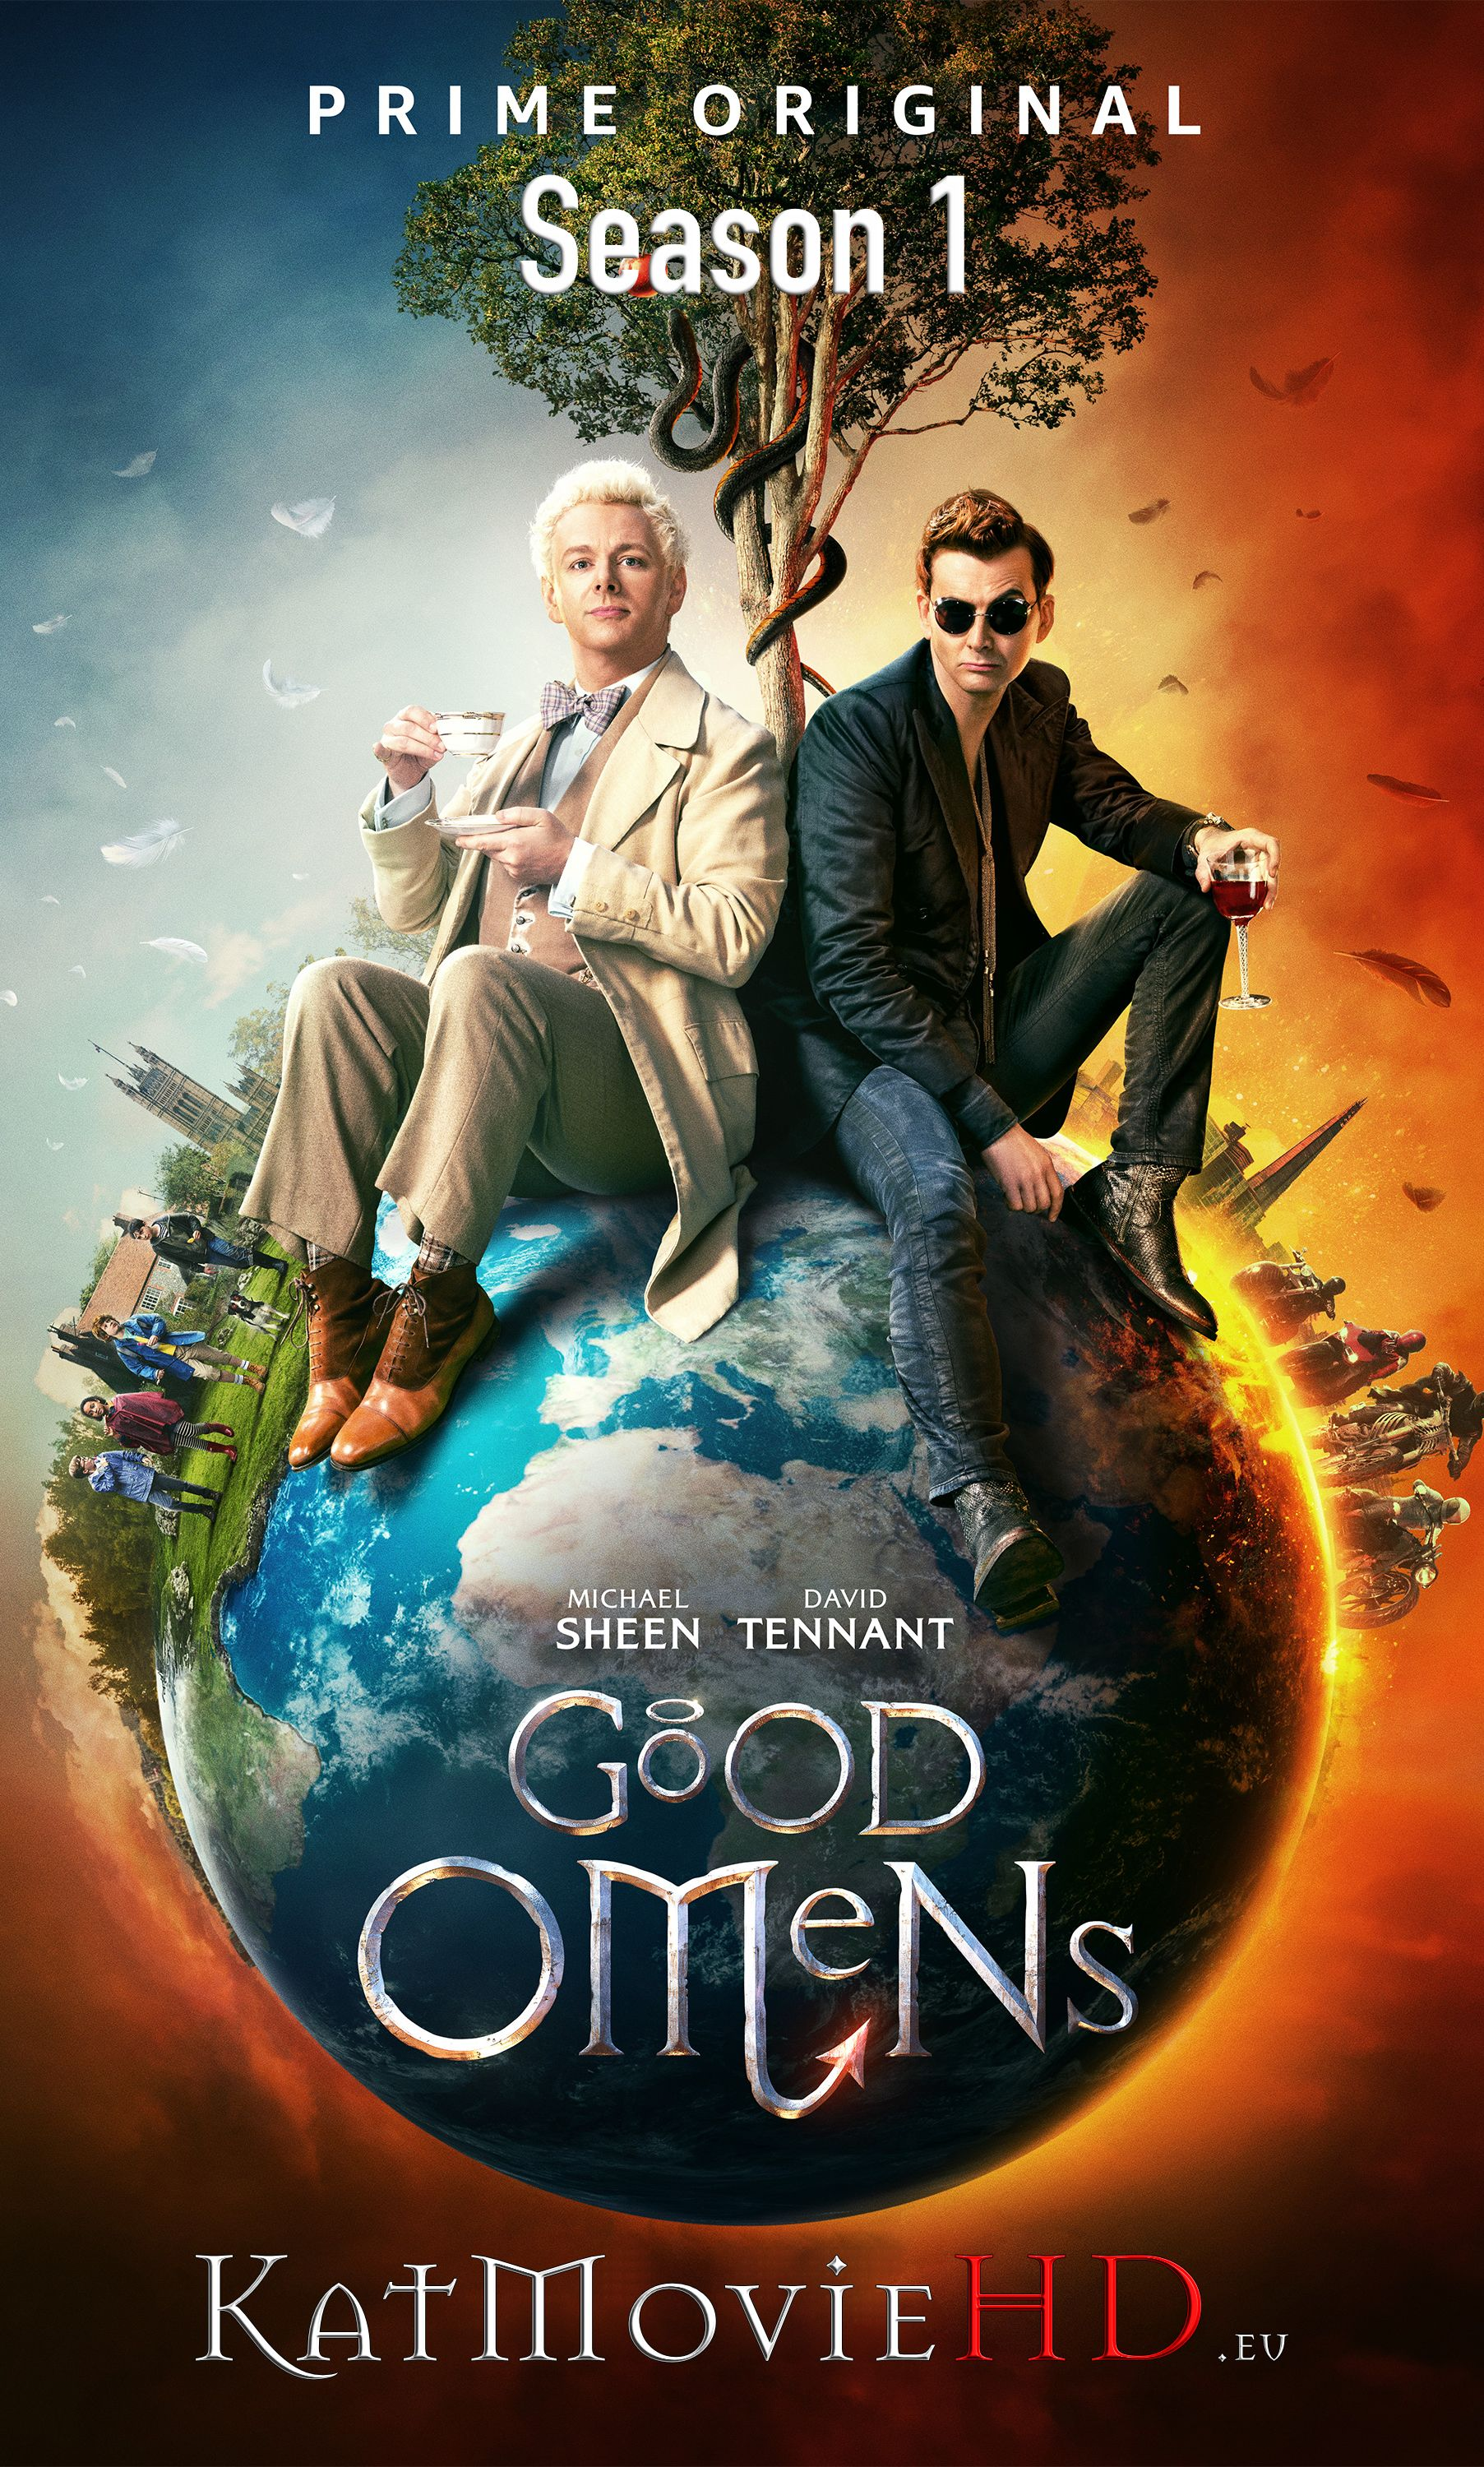 Good Omens S01 Season 1 Complete 480p 720p 1080p HDRip All